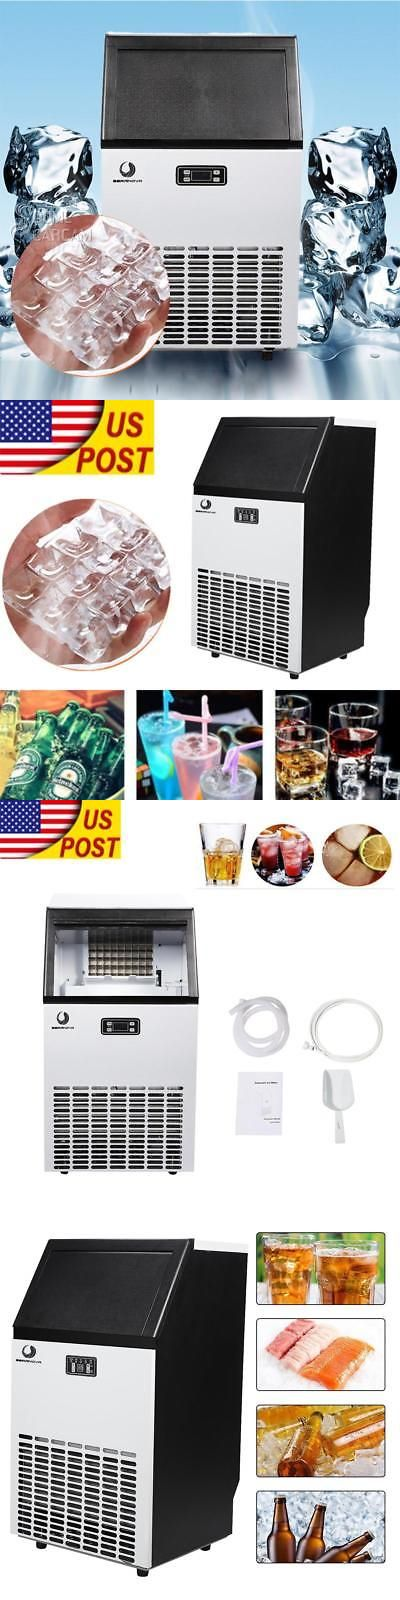 Countertop Ice Makers 122929 Us Commercial Ice Maker Automatic